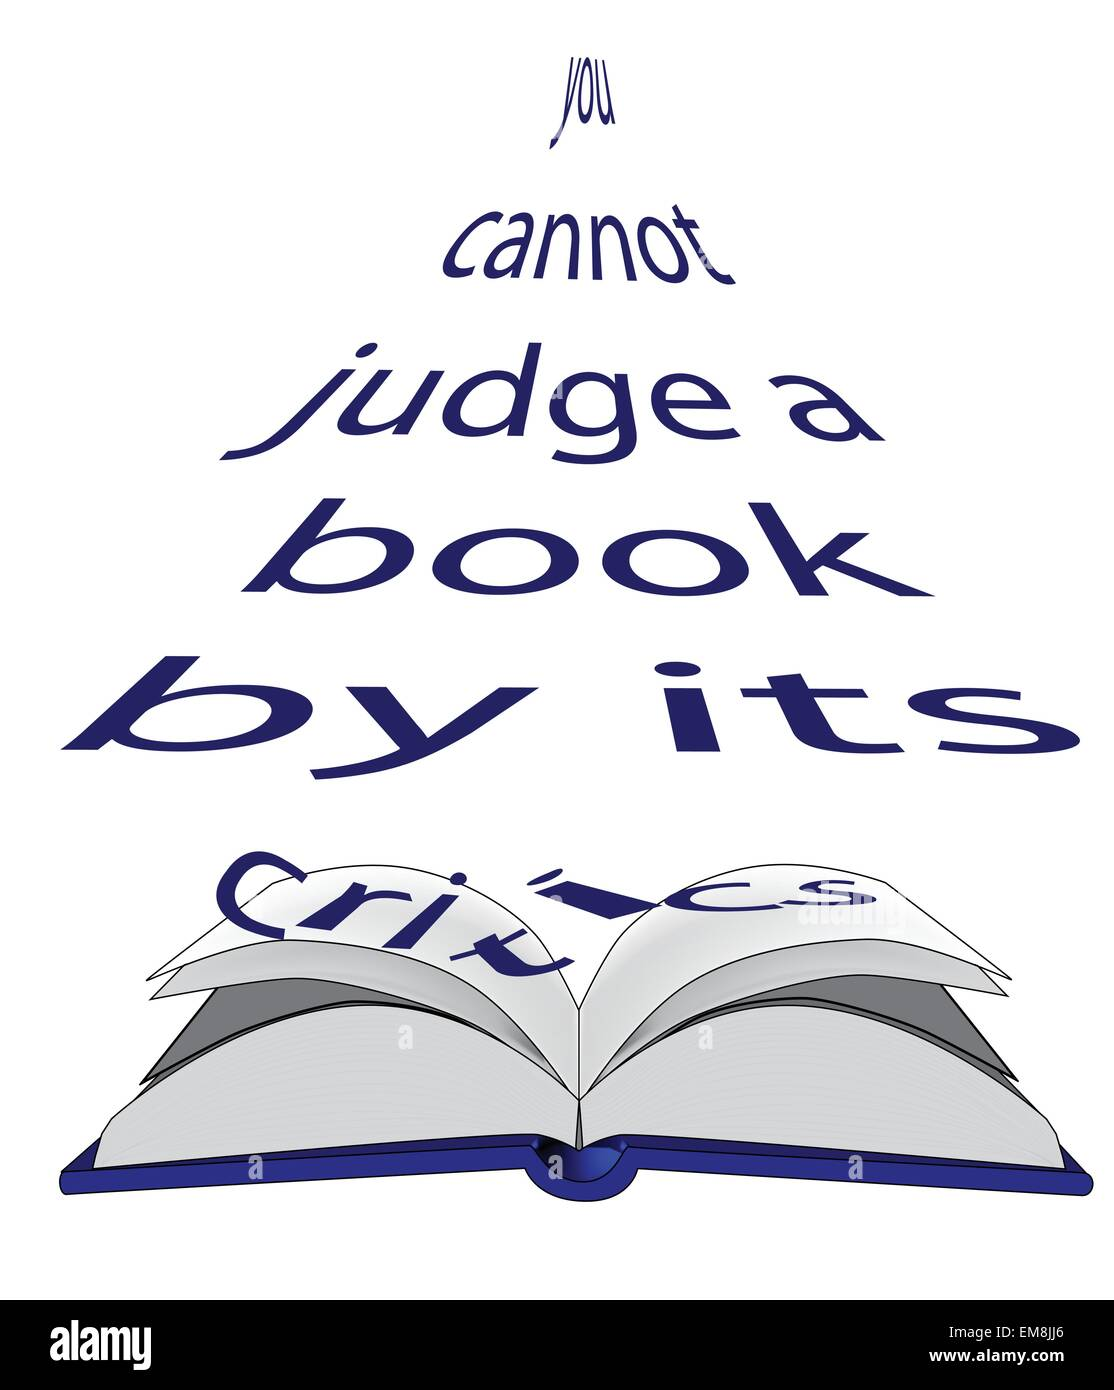 You Cannot Judge a Book by its Critics. - Stock Vector